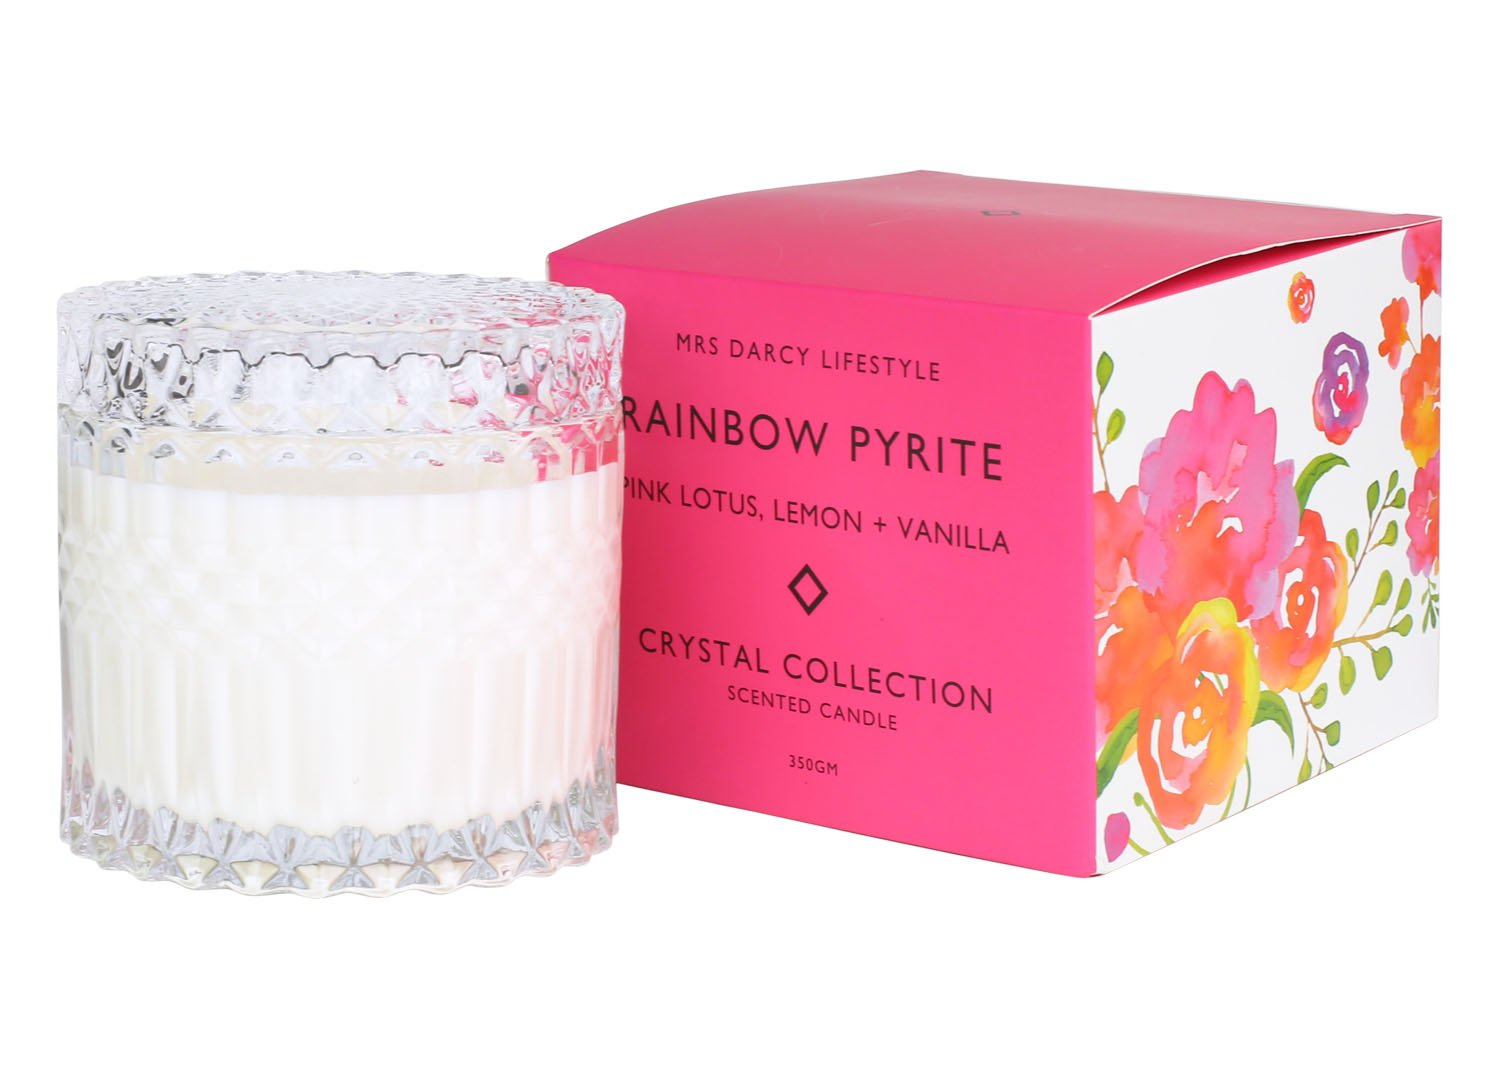 Mrs Darcy Scented Candle - Rainbow Pyrite (Pink Lotus, Lemon and Vanilla)